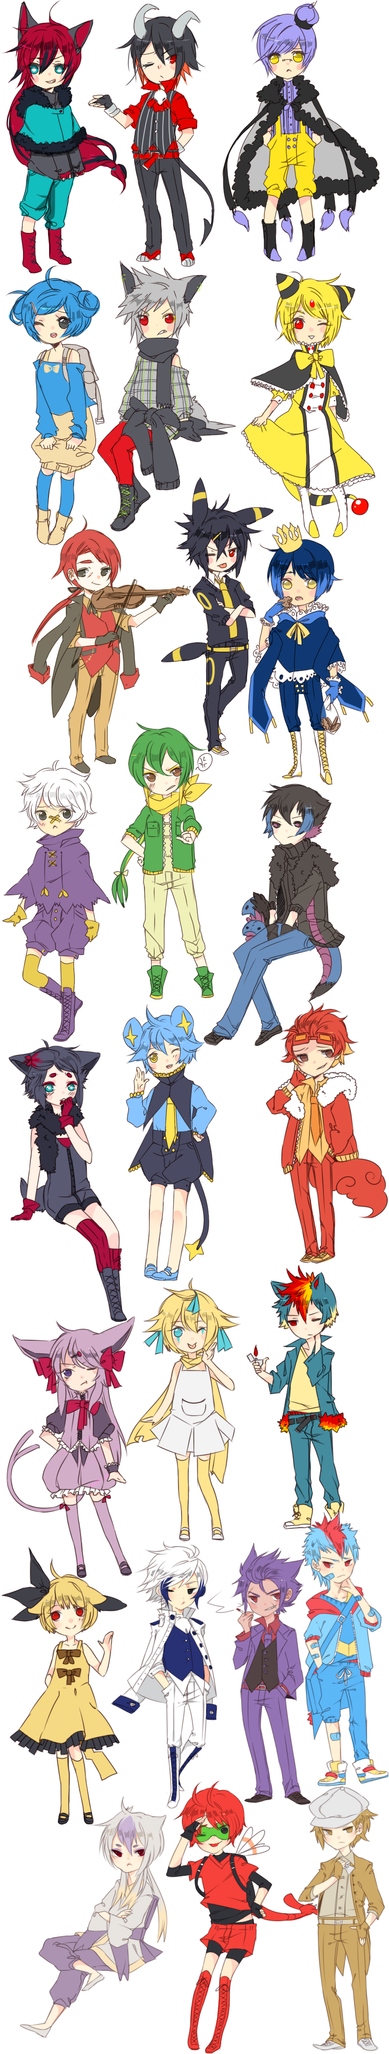 pokemon gijinka chibis by Sir-Cupid